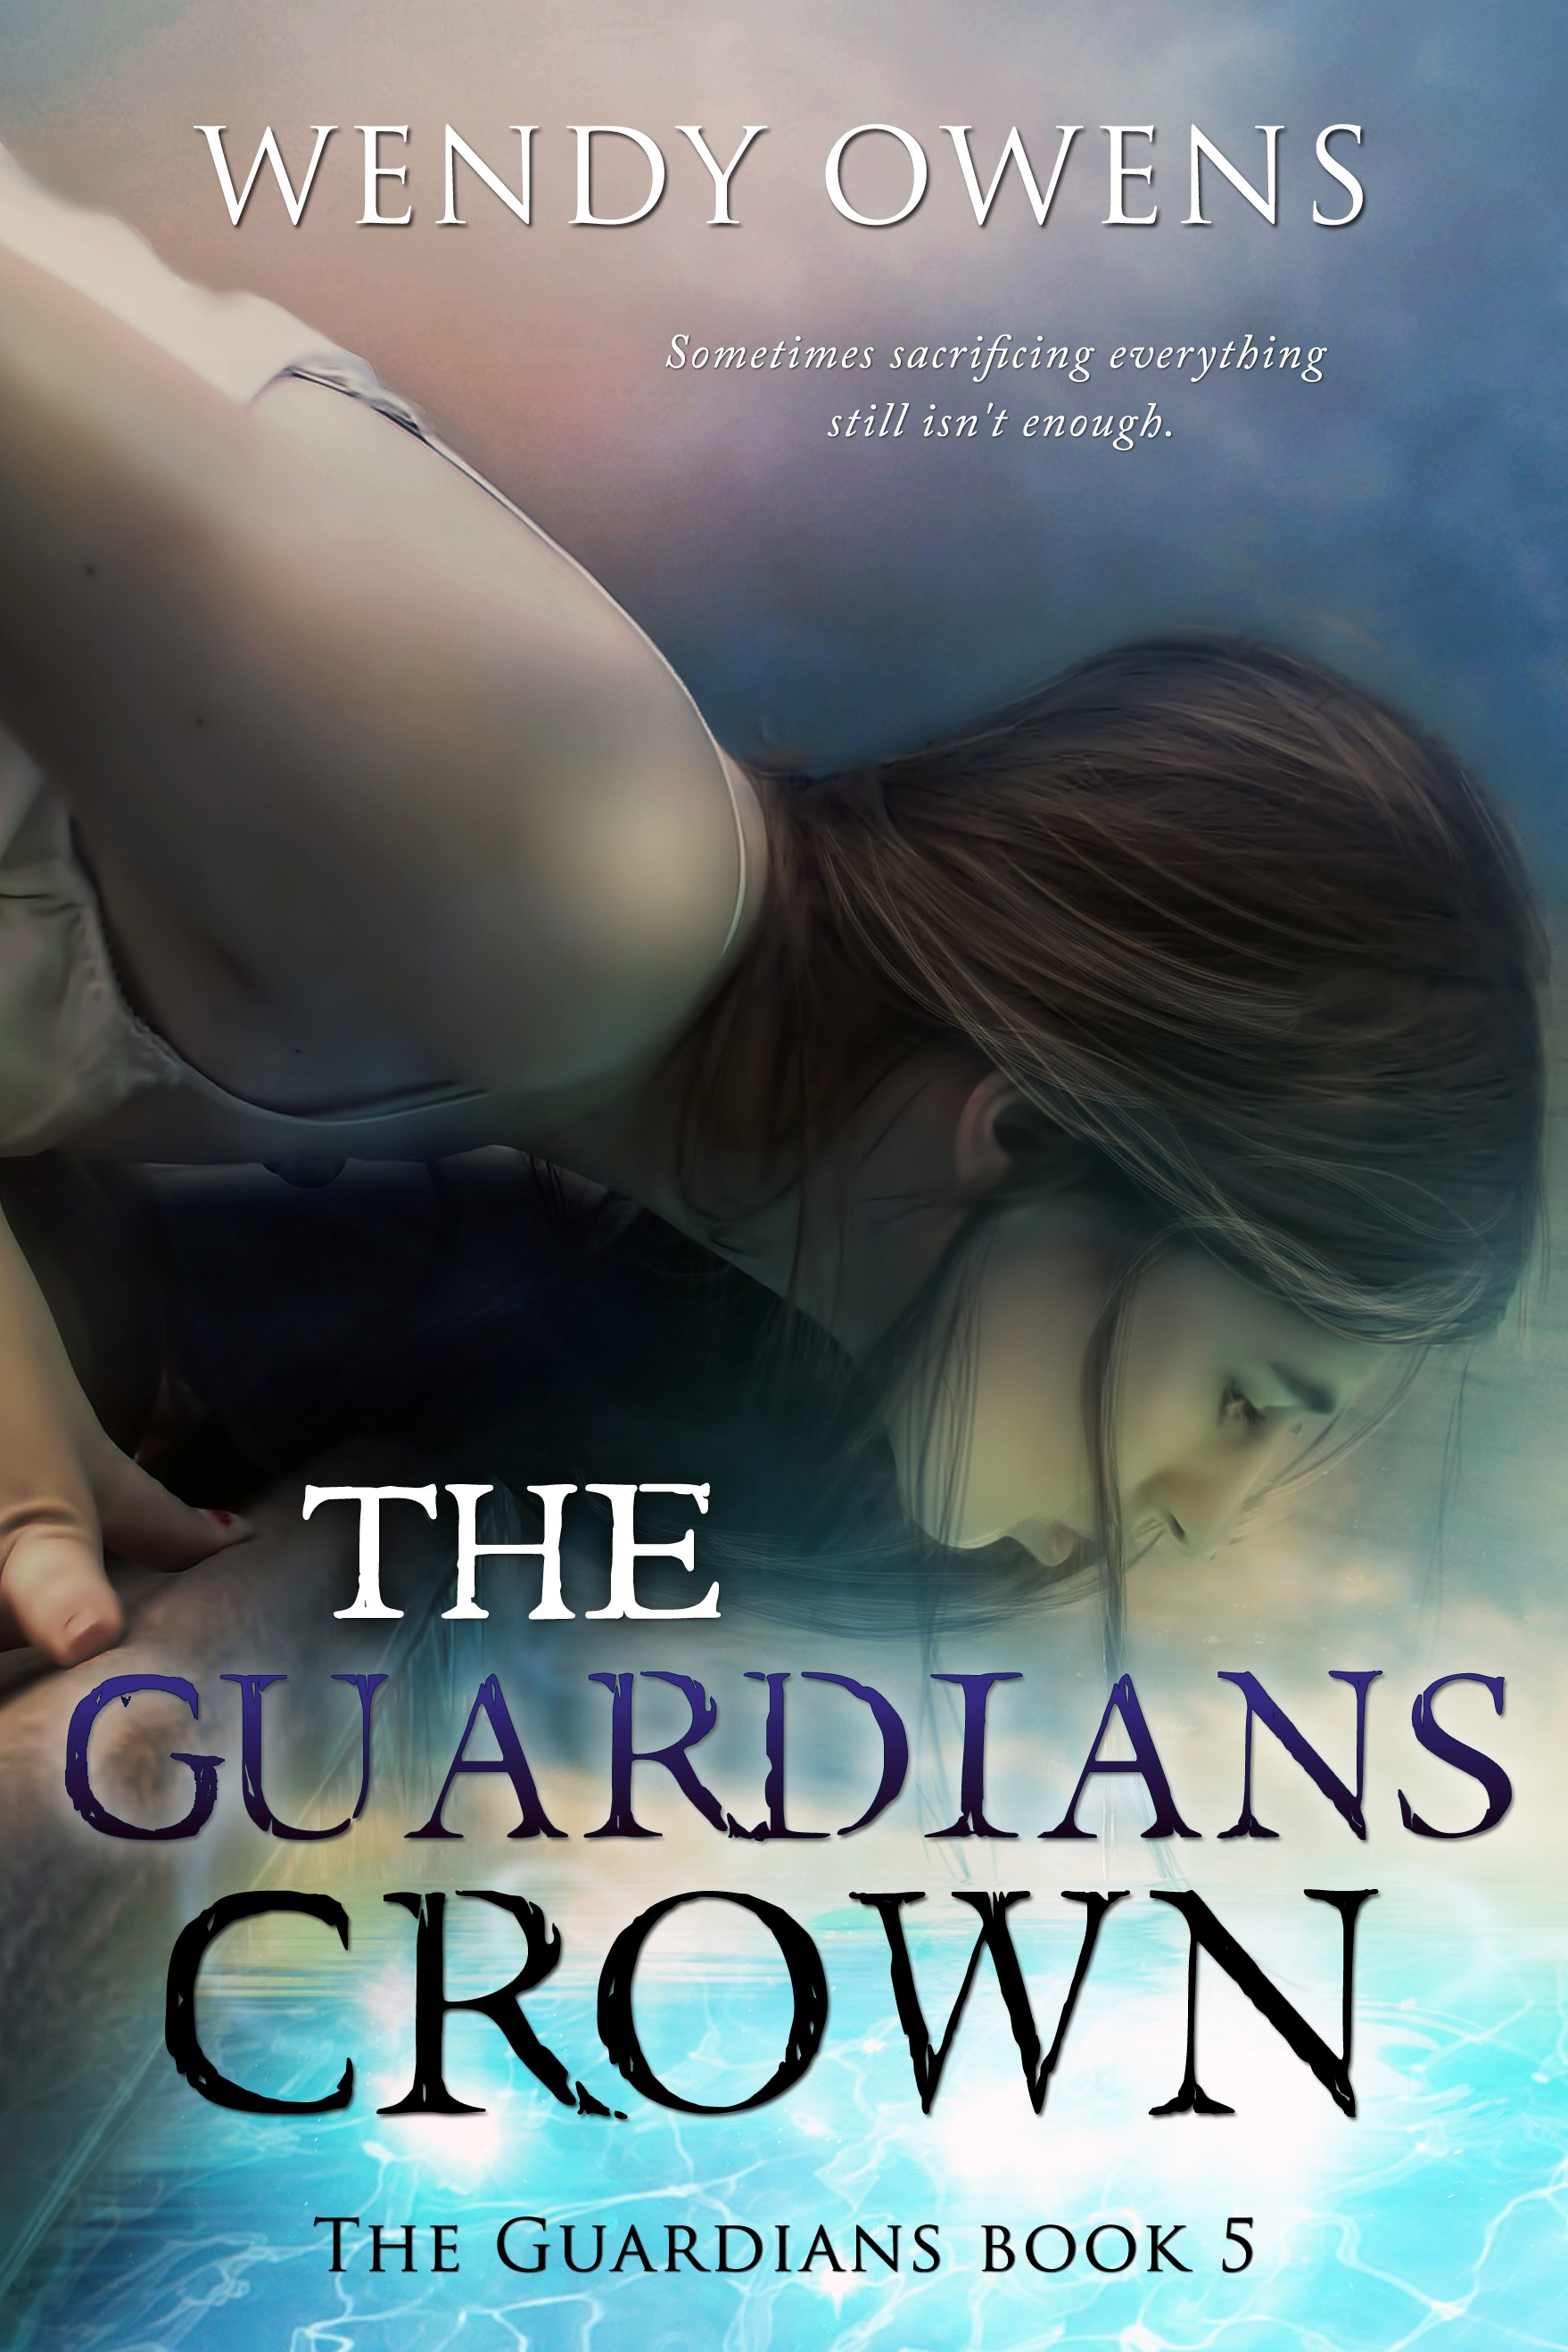 The Guardians Crown by Wendy Owens